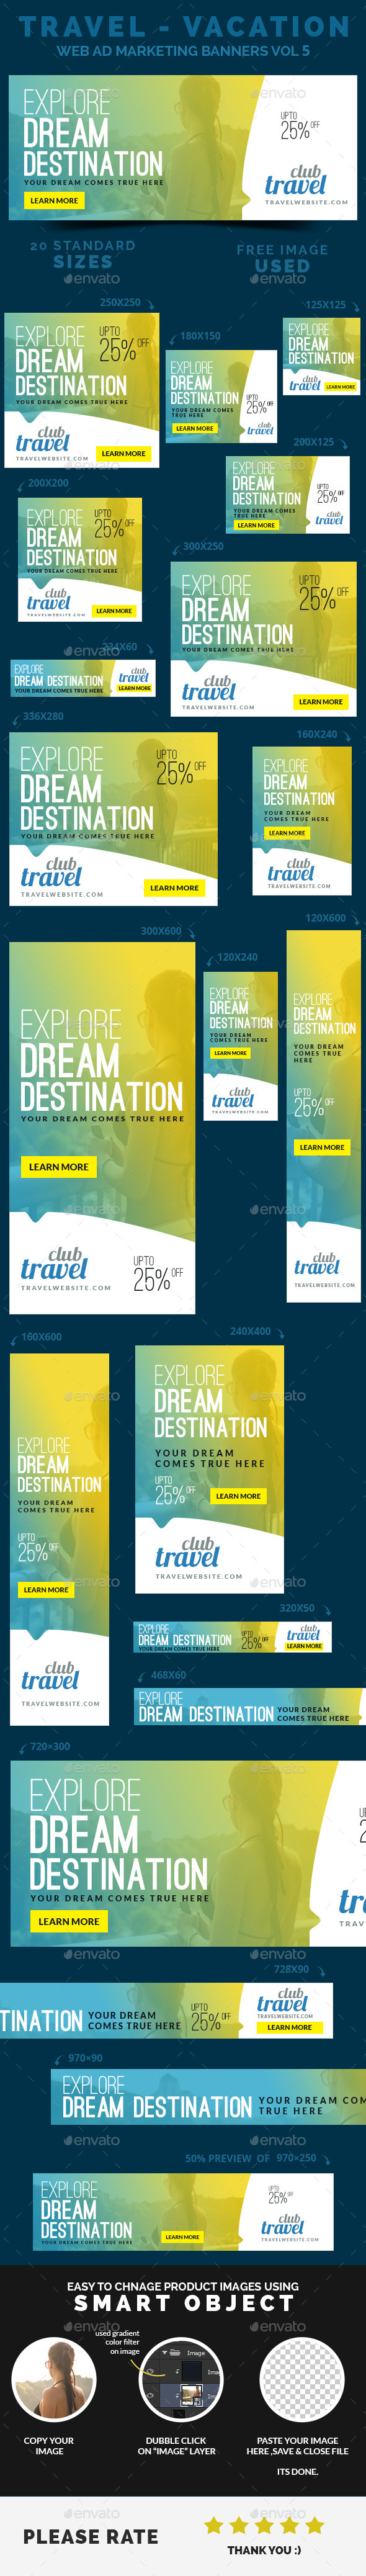 GraphicRiver Travel Vacation Web Ad Marketing Banners Vol 5 8895973